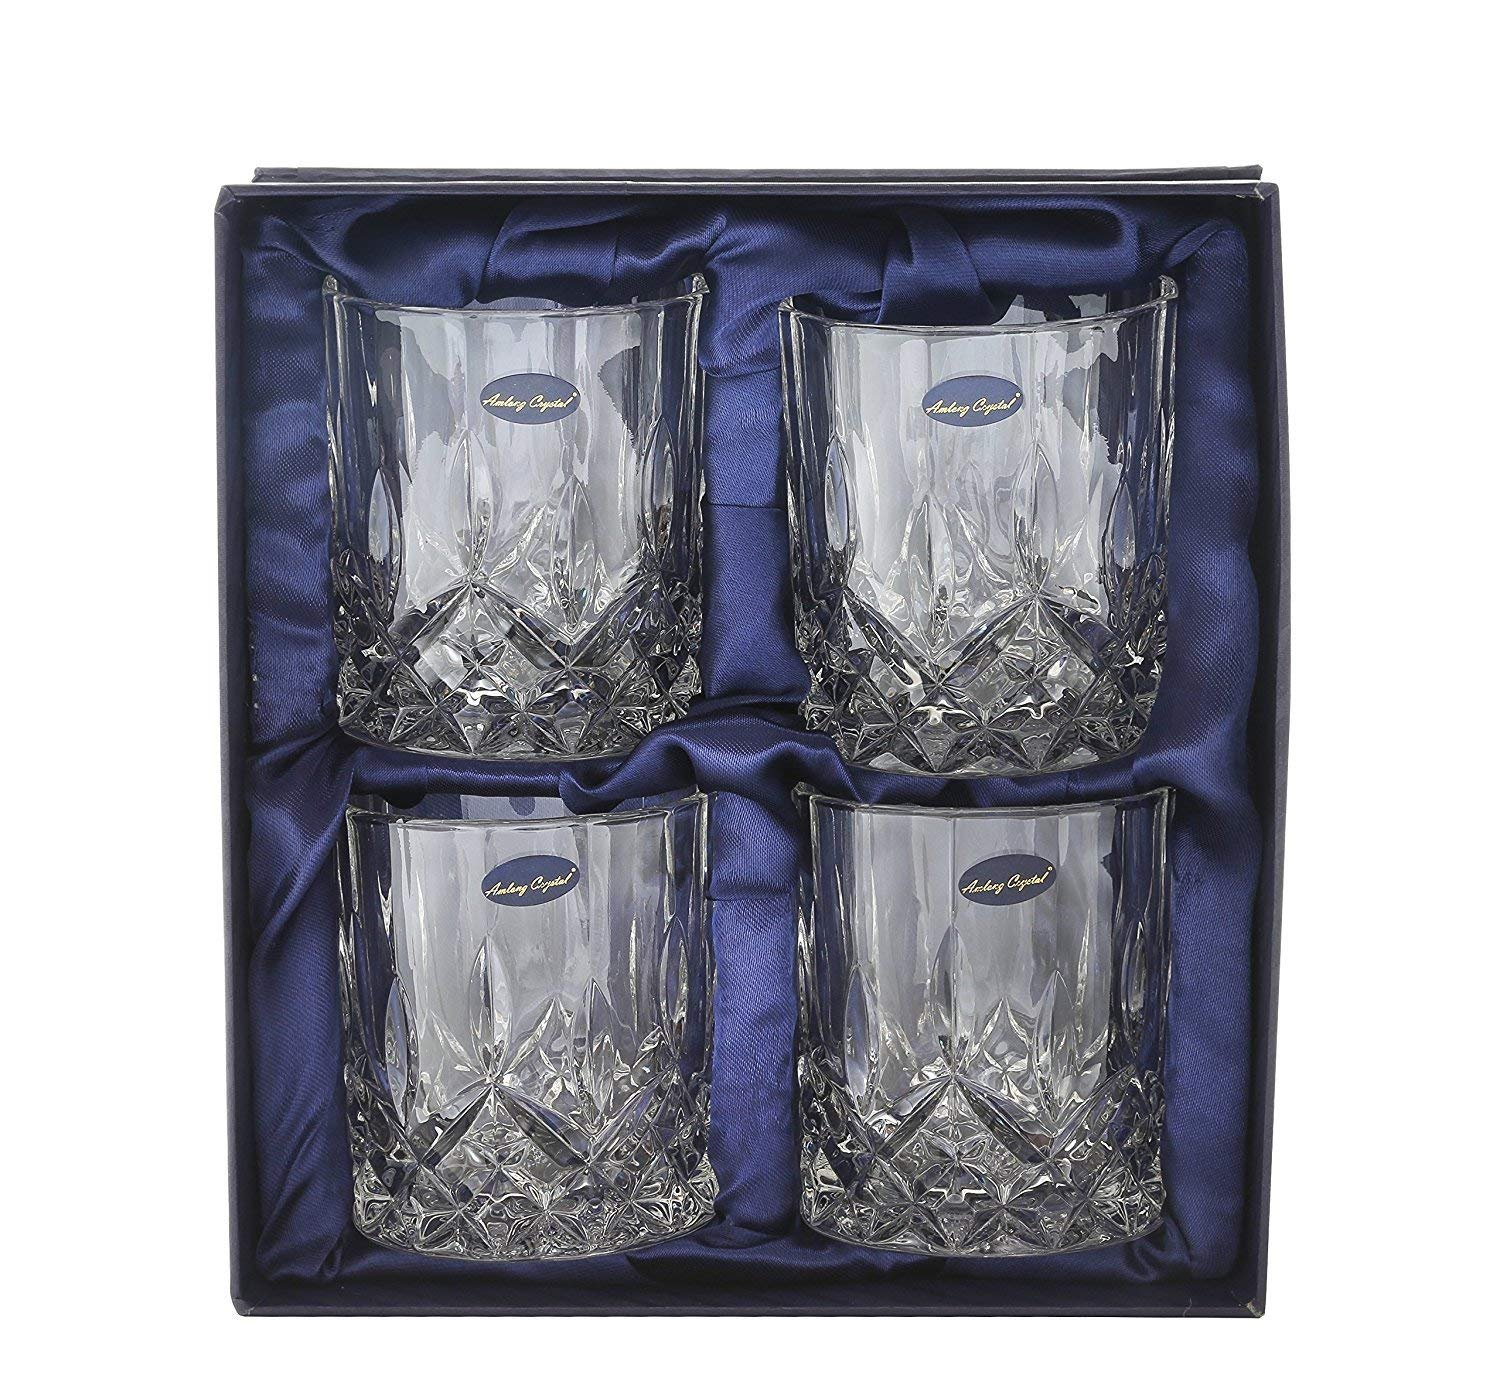 Amlong Crystal Lead Free Double Old Fashioned Crystal Glass, 9 Ounce, Set of 4 …